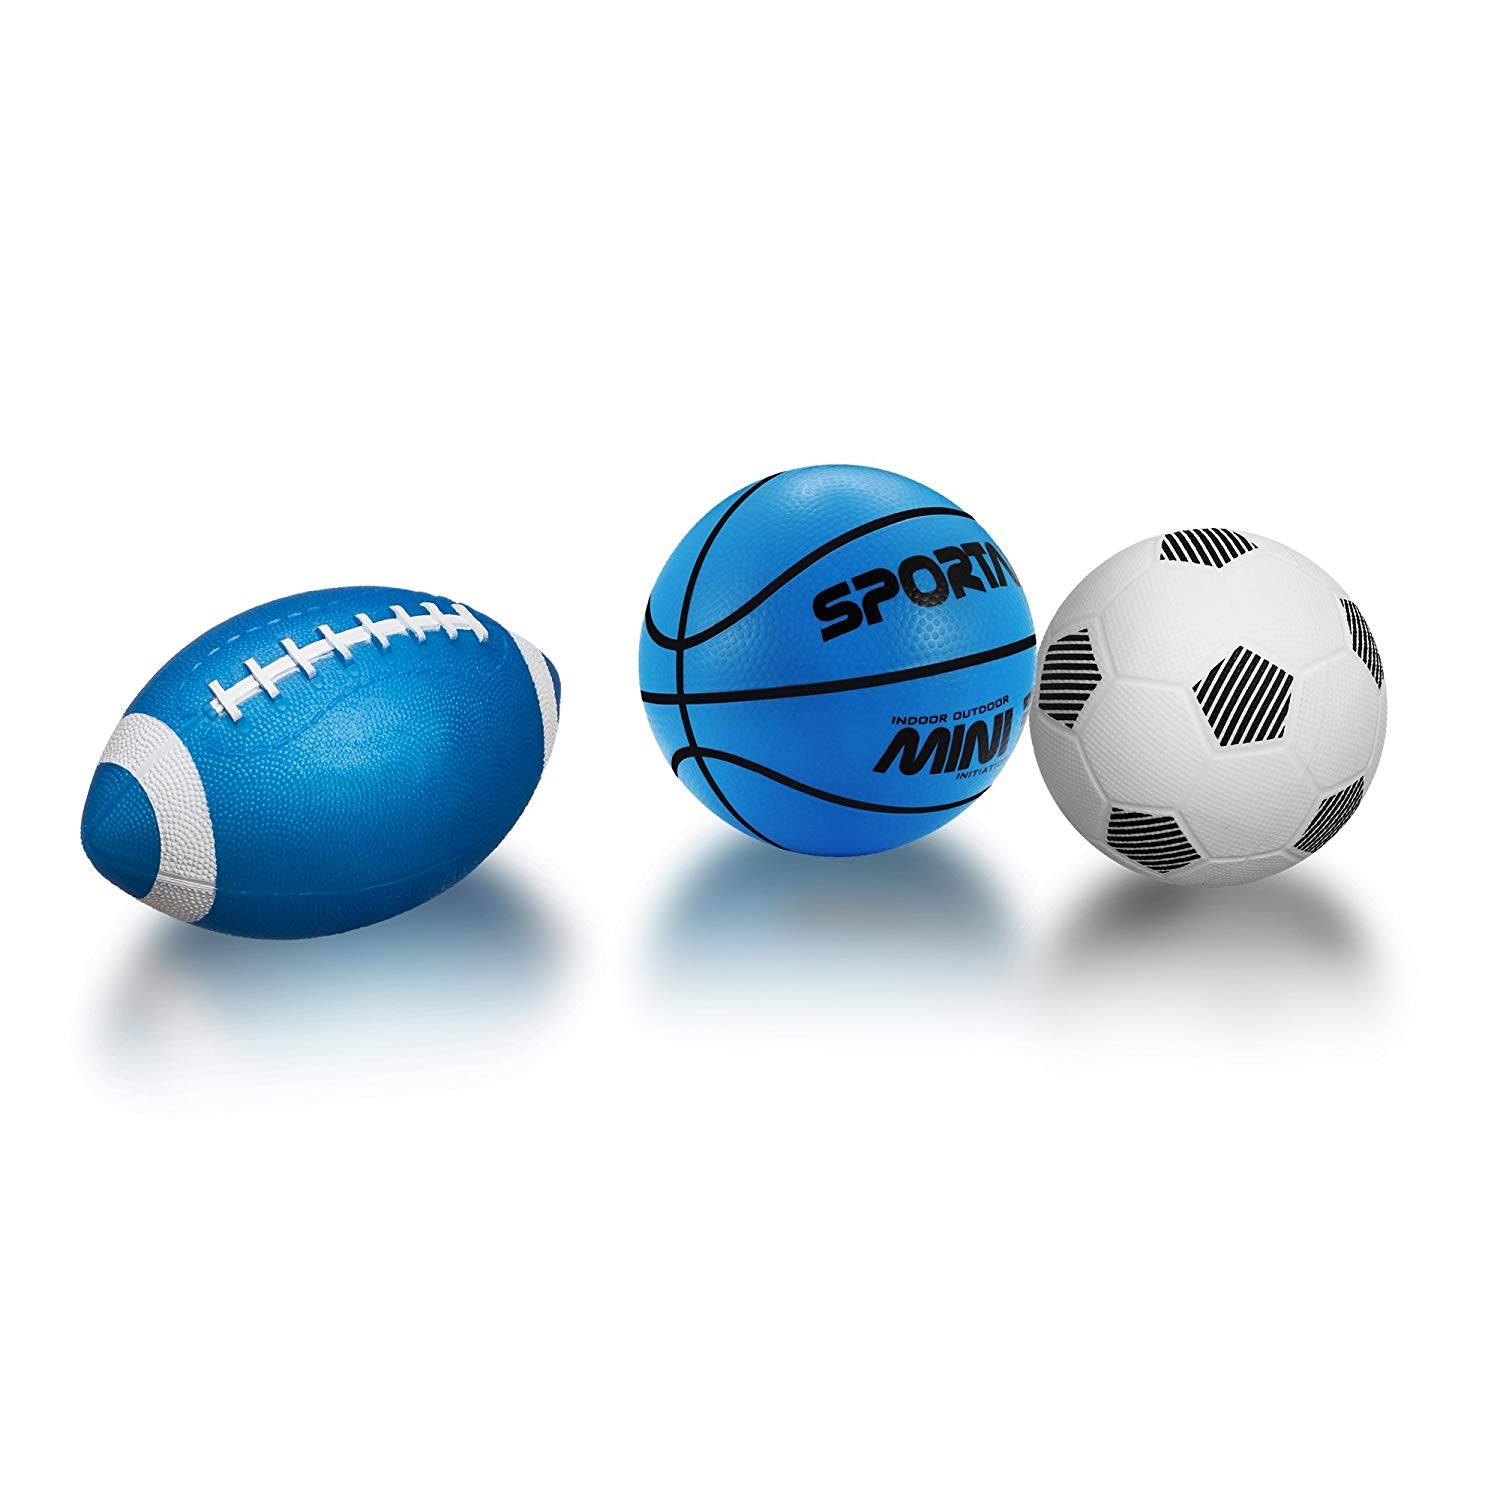 Sports Toy Ball Set for Toddlers,Soft Inflate Bouncy Balls for Kids Playground Outdoor Indoor Family Games(Includes 5 inch Basketball,5 inch Soccer,8.5 inch Football,Pump) Pack of 3